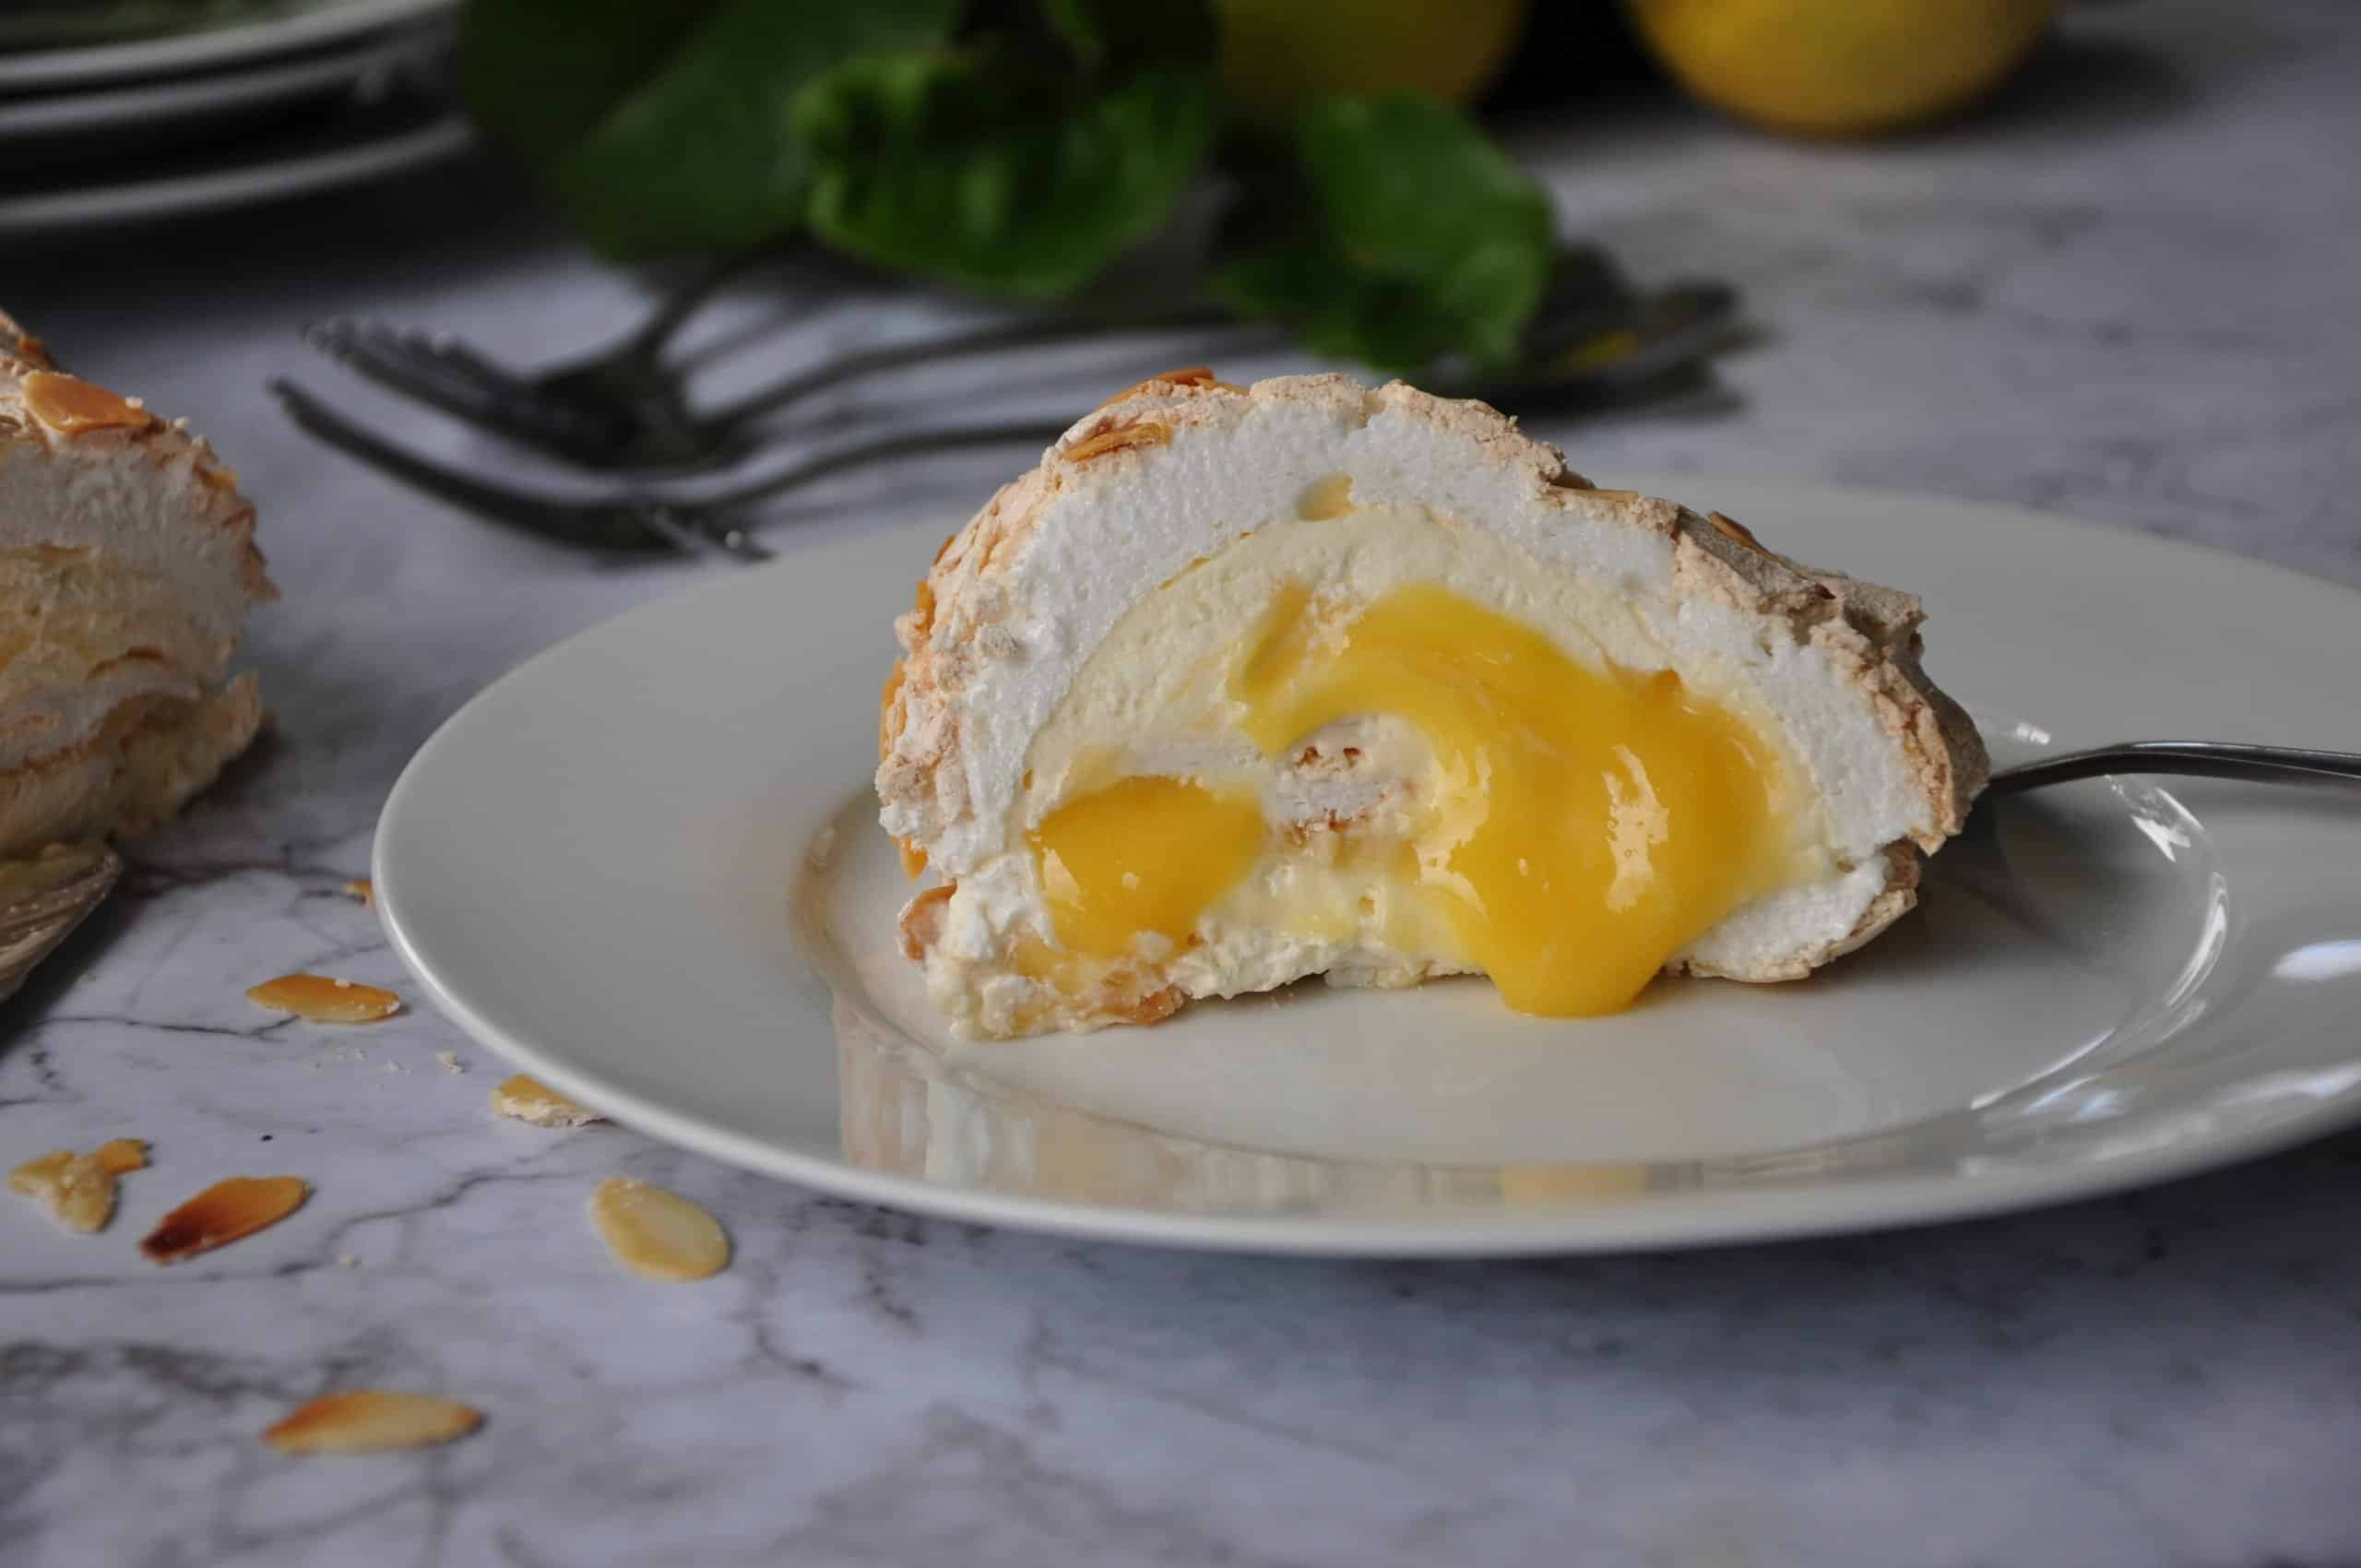 Lemon Curd and Almond Rolled Pavlova